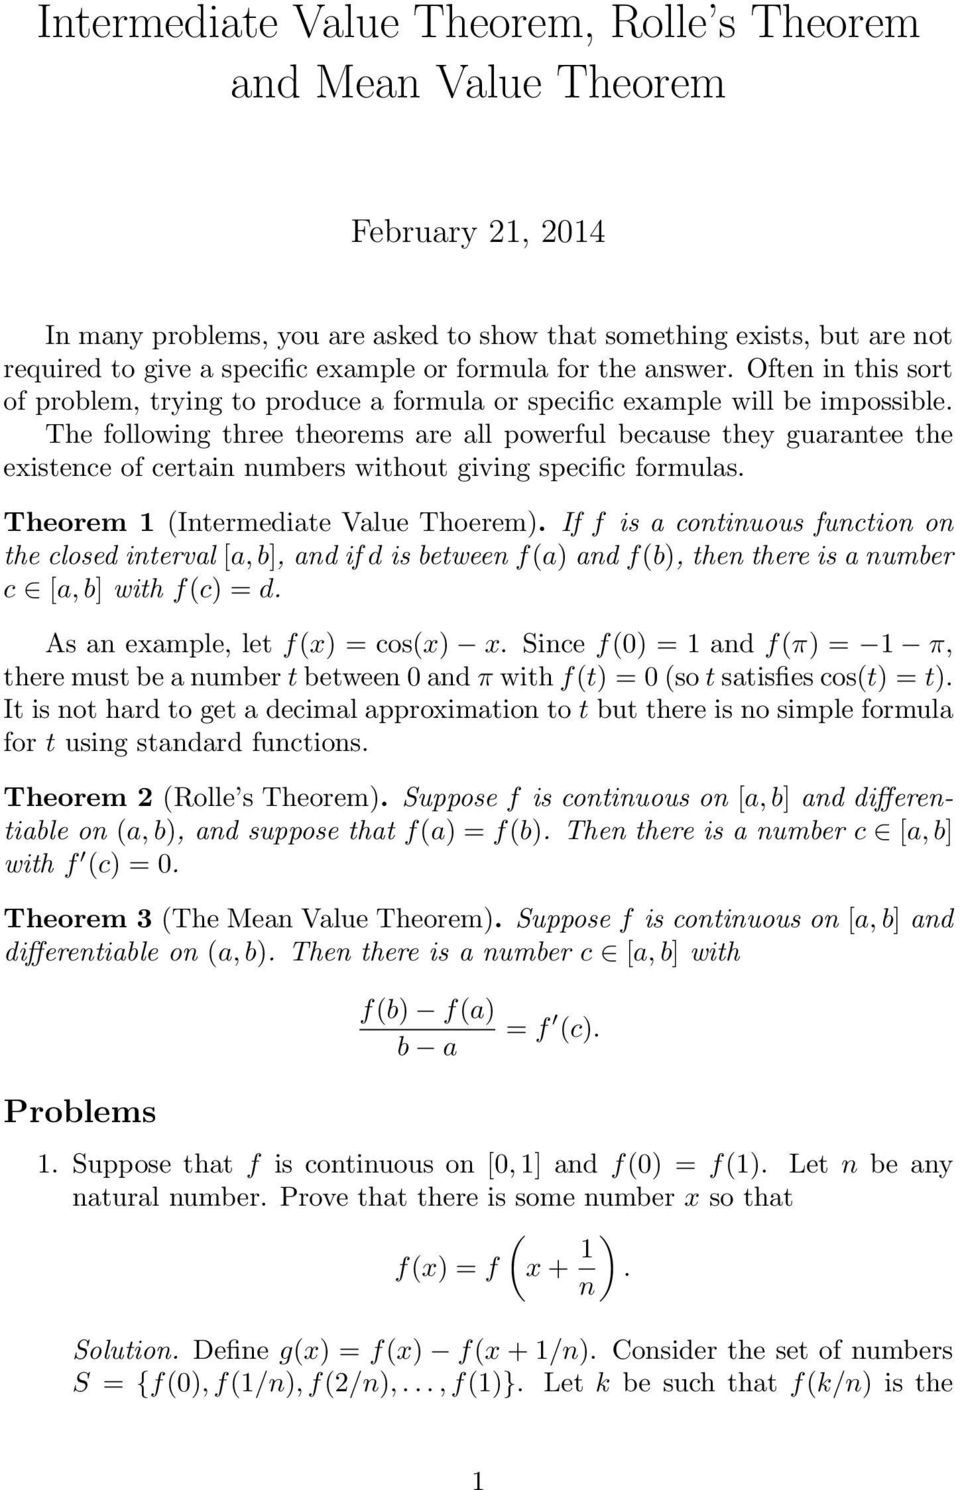 Intermediate Value Theorem Rolle S Theorem And Mean Value Theorem Pdf